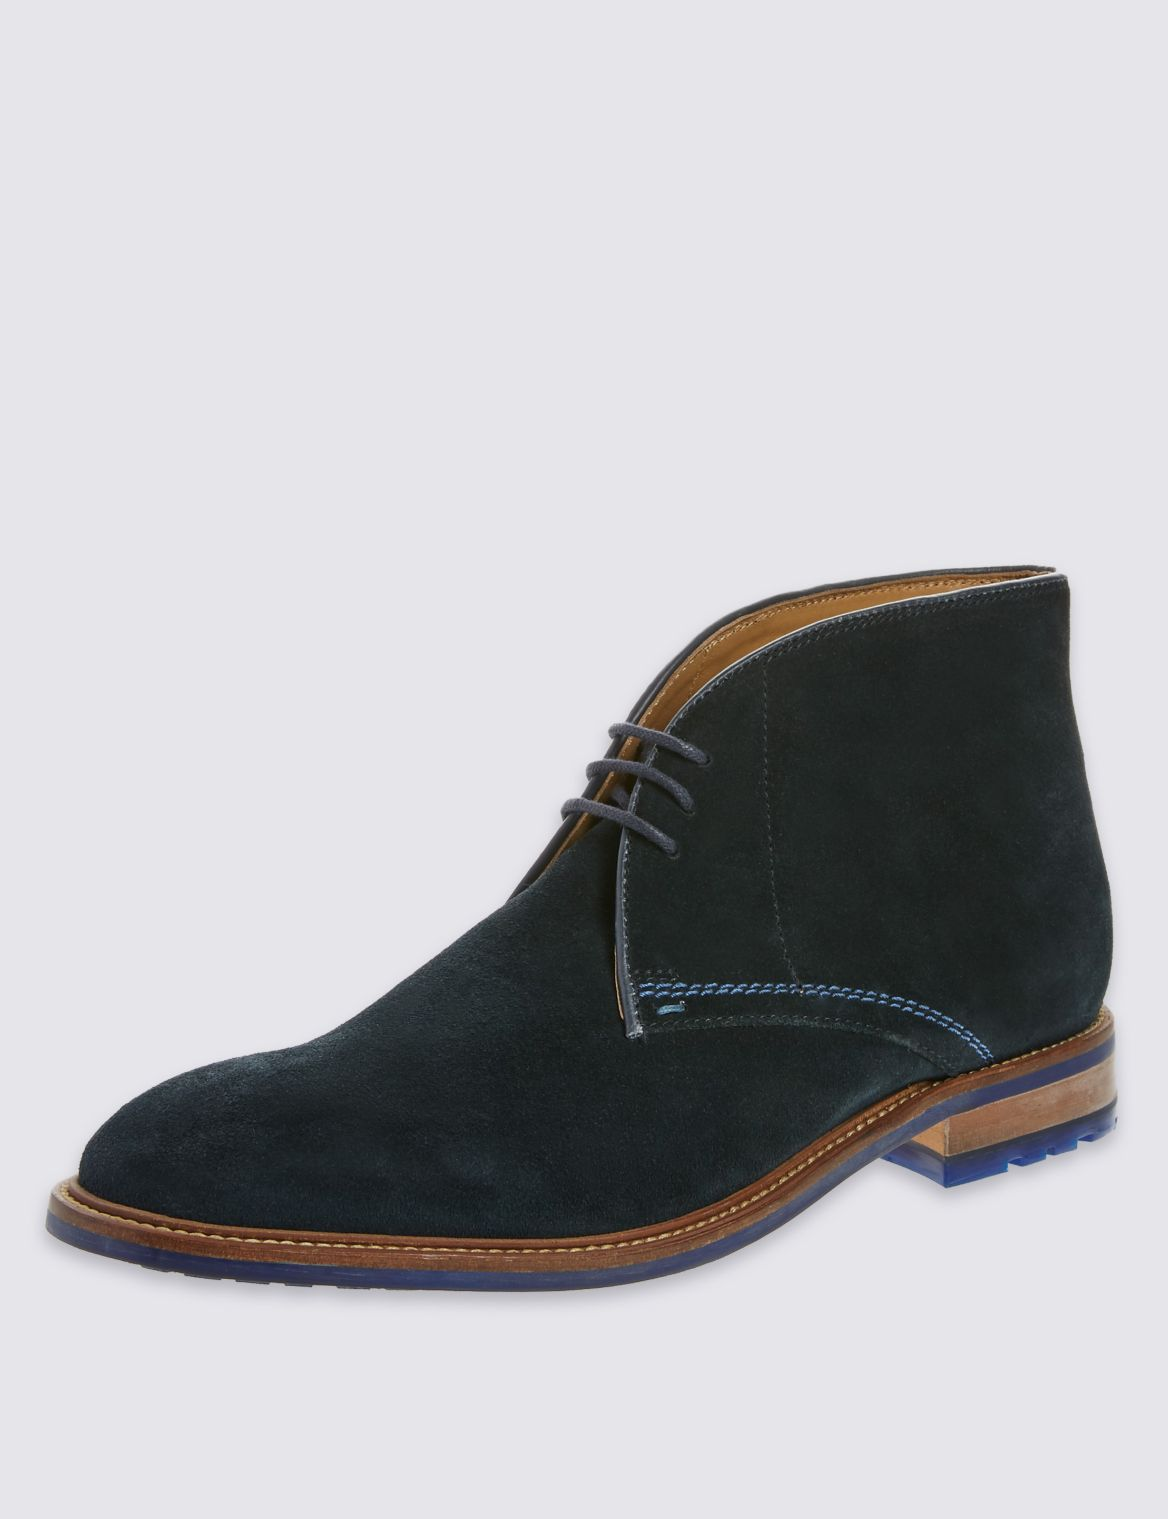 Leather Lace-up 3 Eyelet Chukka Boots navy